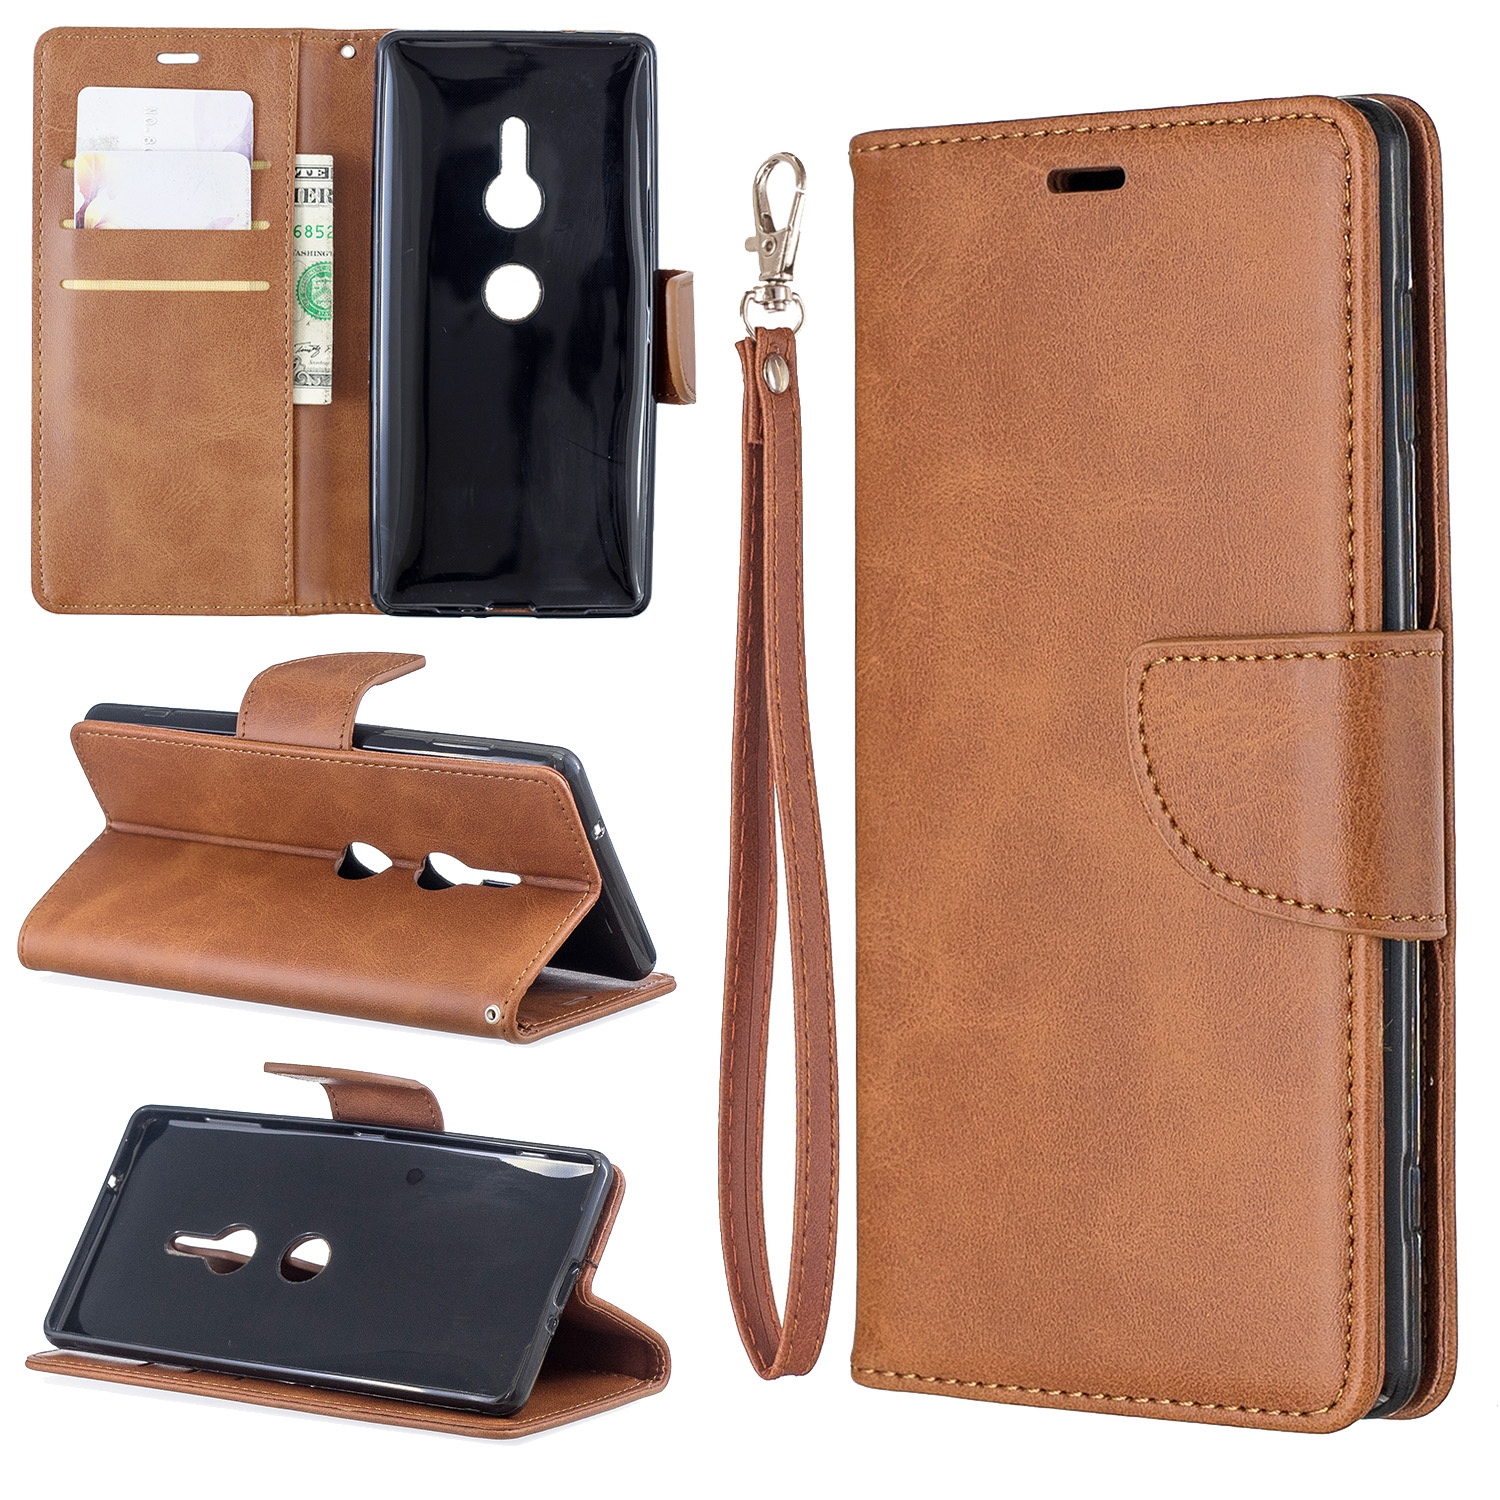 Magnetic-Flip-Card-Wallet-Leather-Phone-Case-For-Sony-Xperia-XA2-Ultra-XZ1-L3-10 thumbnail 28